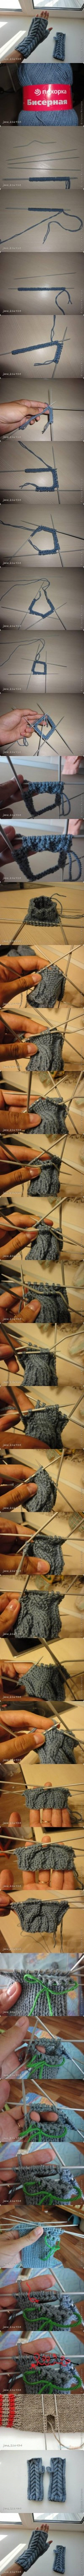 DIY Fingerless Gloves DIY Projects | UsefulDIY.com